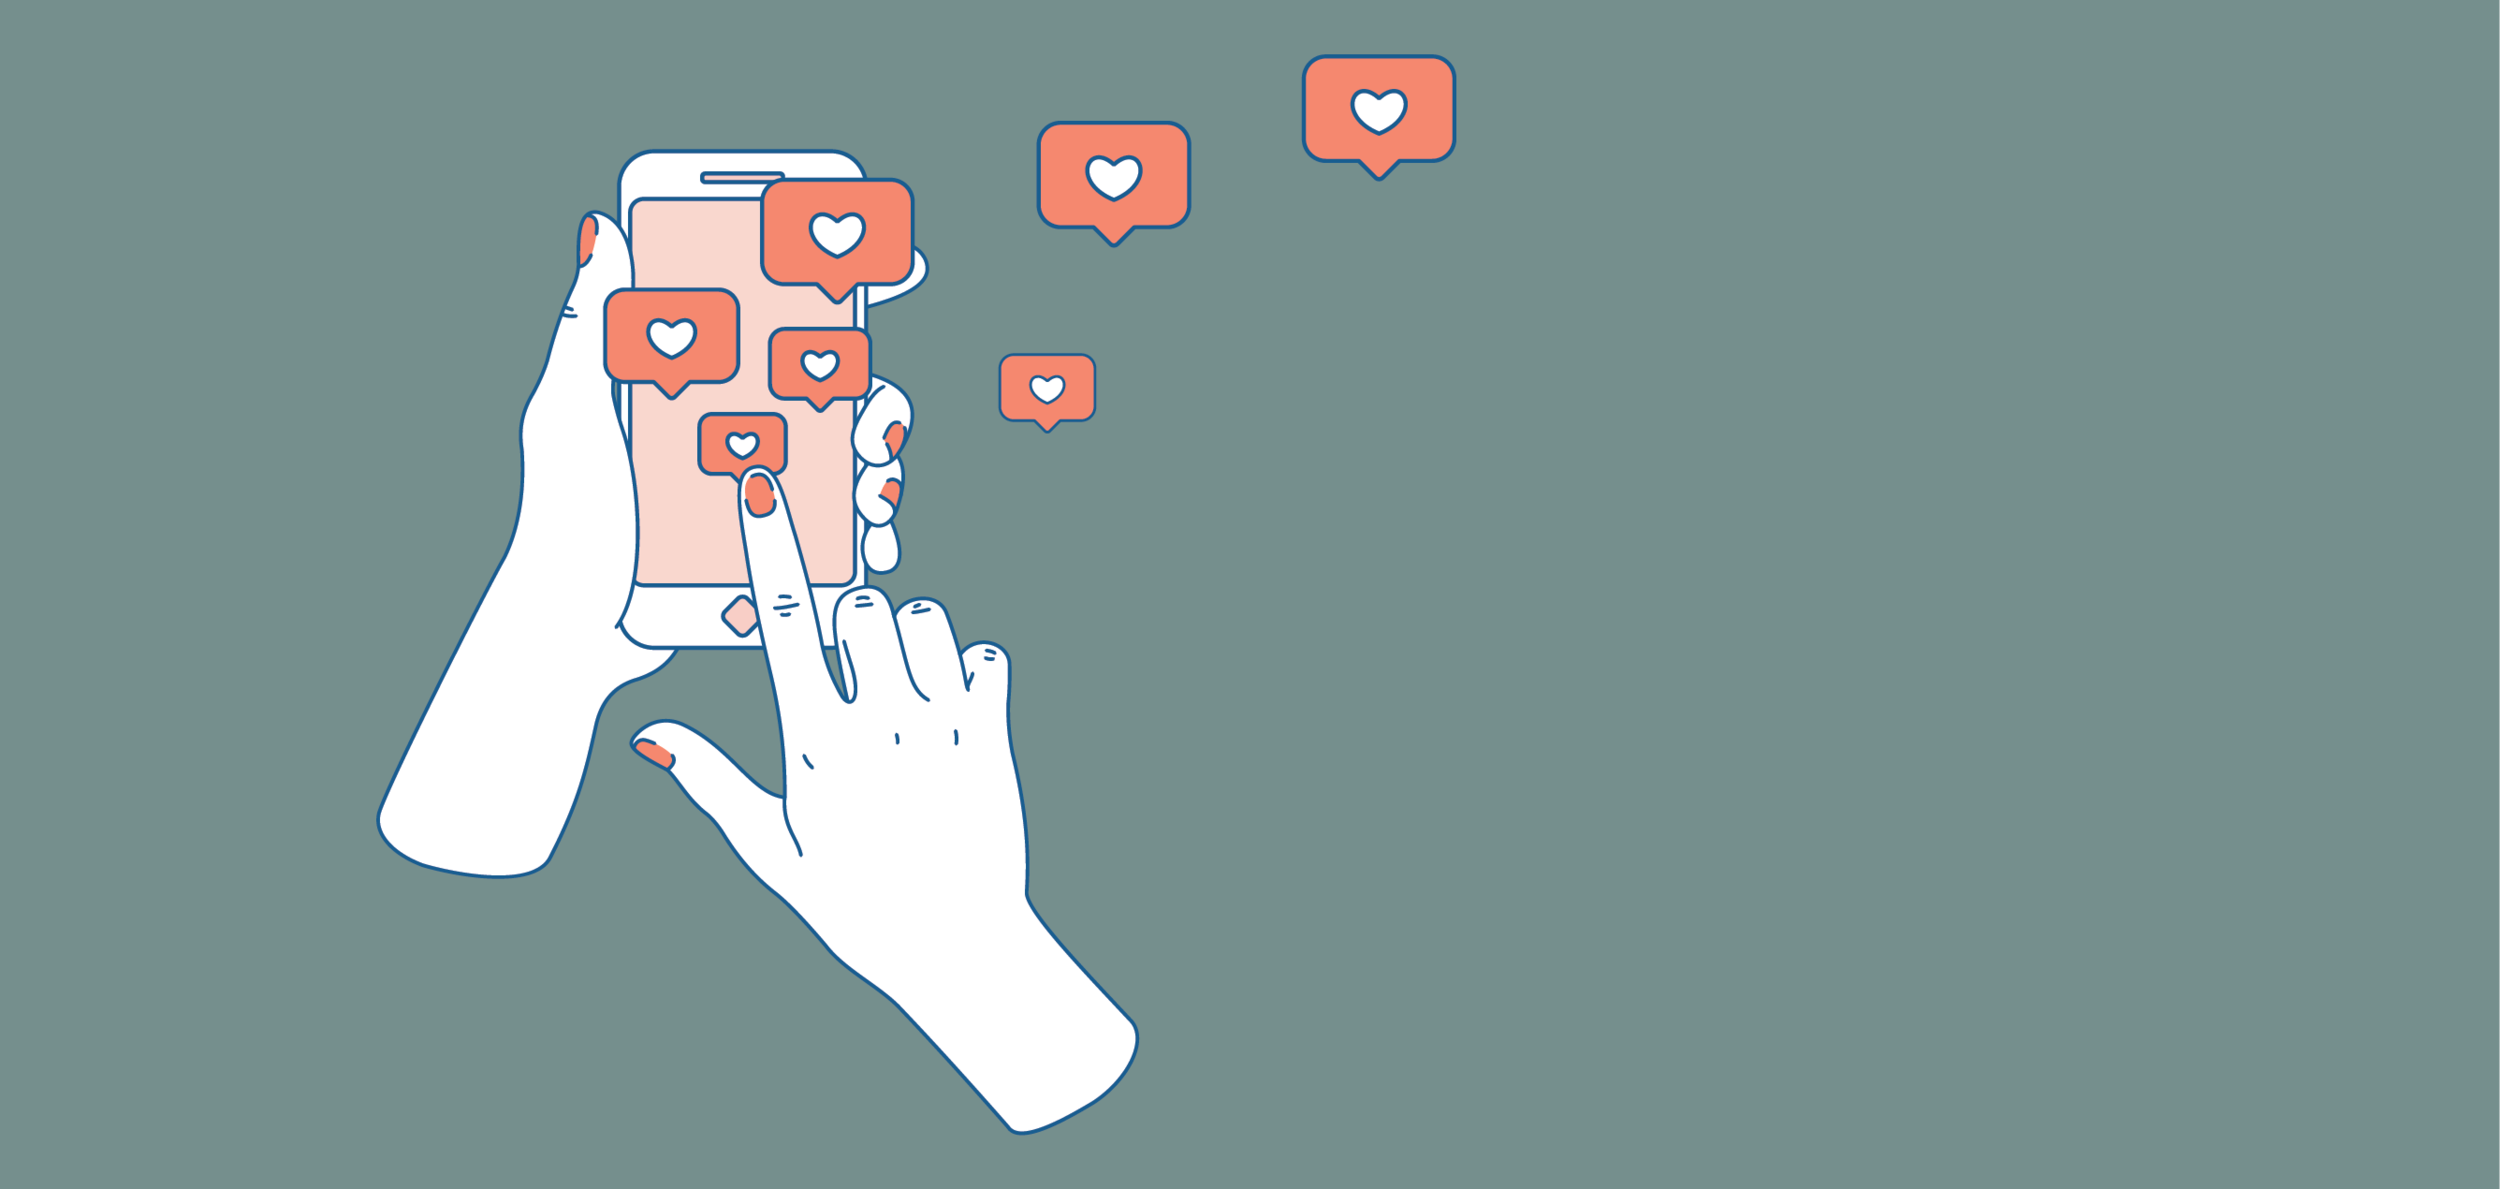 Social-media-like.-Woman-hand-with-smartphone.-Following-notification.-Vector-illustration-1014216208_5208x5208 [Converted]-01.png